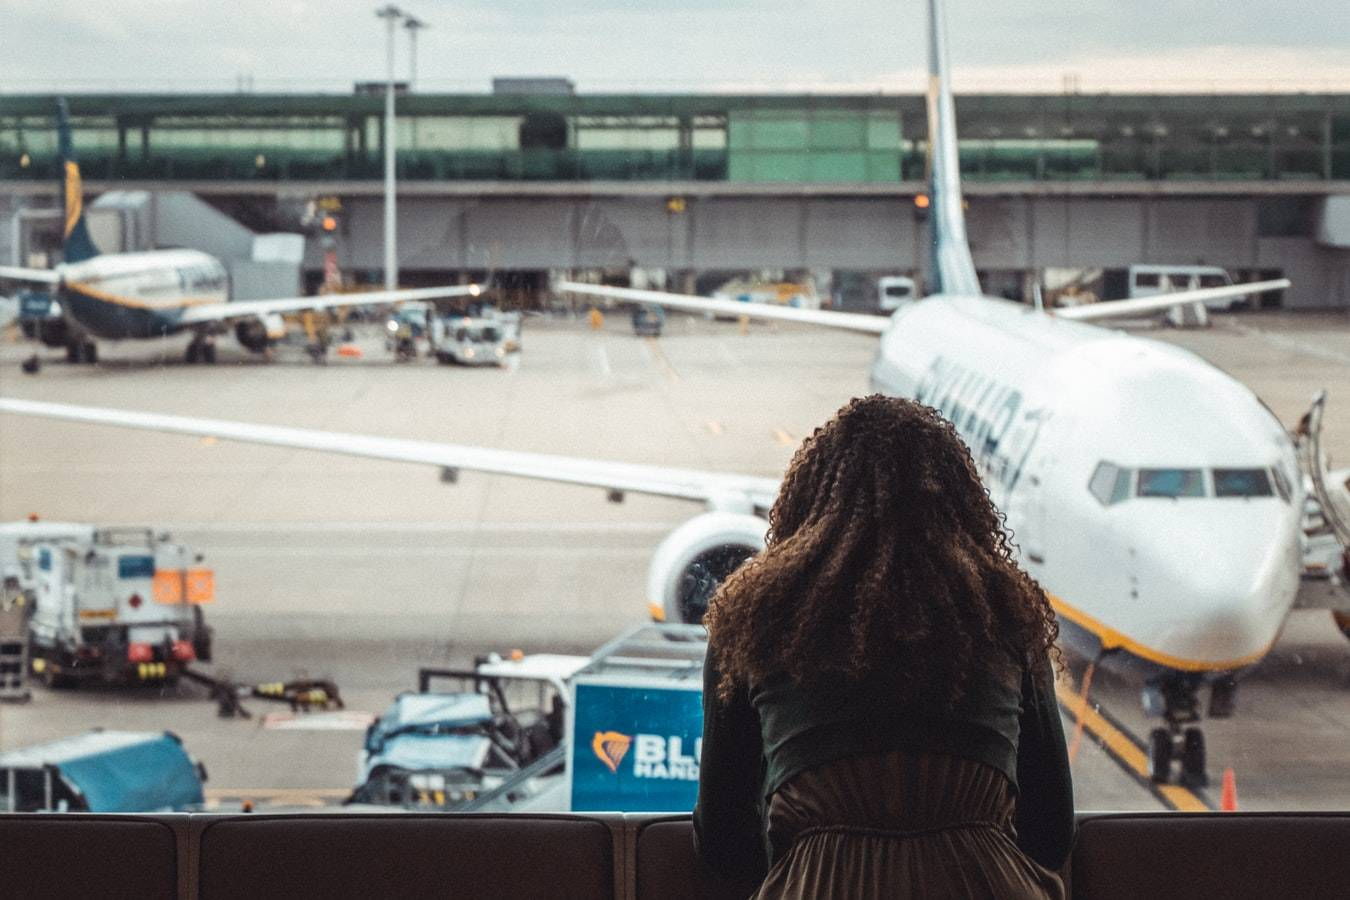 Women looking out the window in an airport